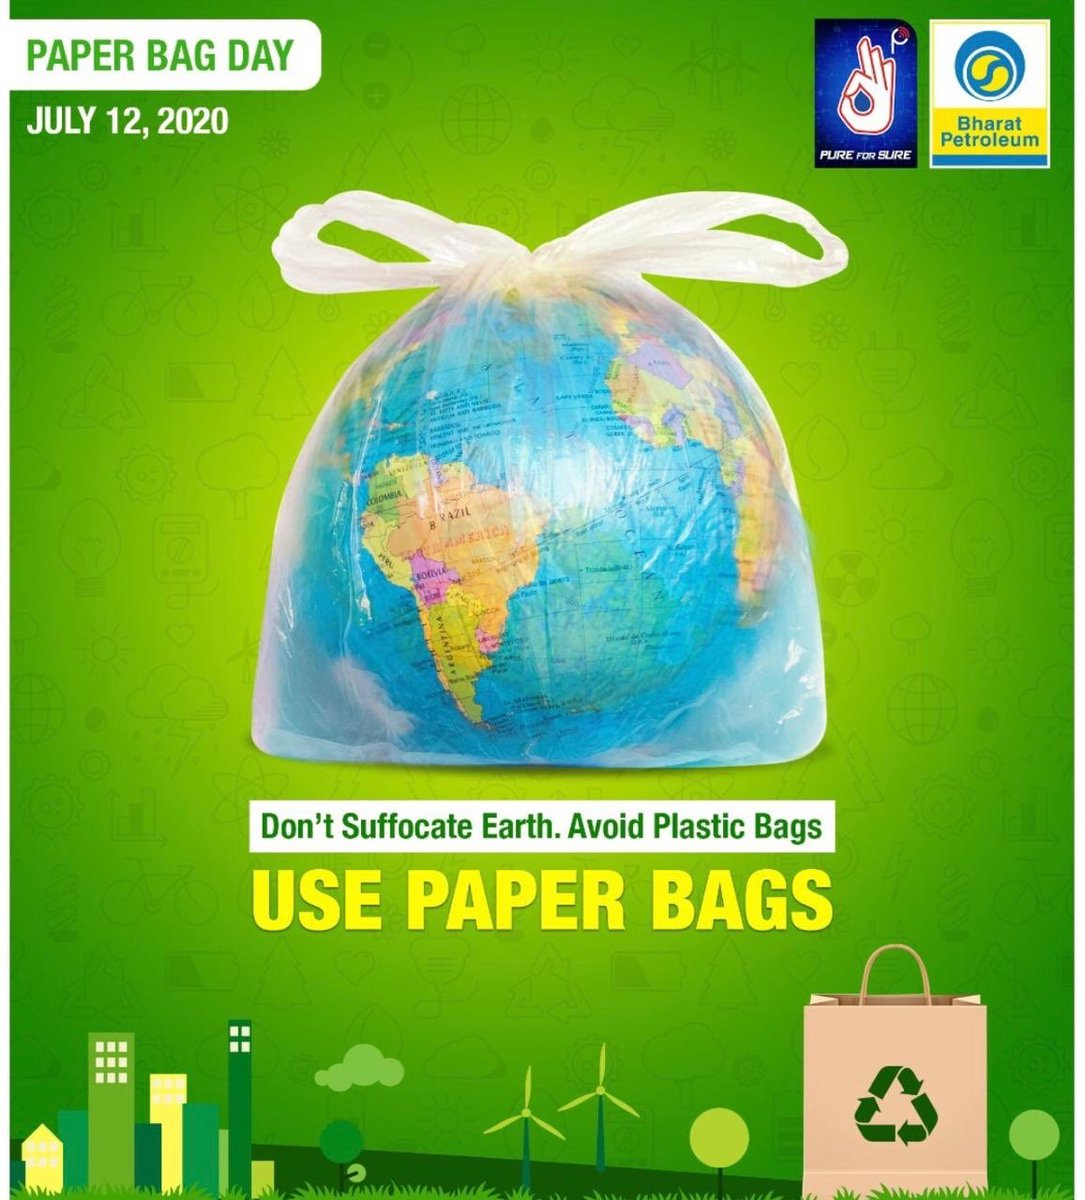 This Paper Bag Day, do your bit for the environment by pledging to avoid polythene/plastic bags and replacing them with paper. #PaperBagDay #EnvironmentDay  #SaveEarth #Recycle #SaveEnvironment #BPCL #SwachhBharat #SwachhtaPakhwada2020 #BharatPetroleum #EnergisingLives https://t.co/p2IYZESU8P